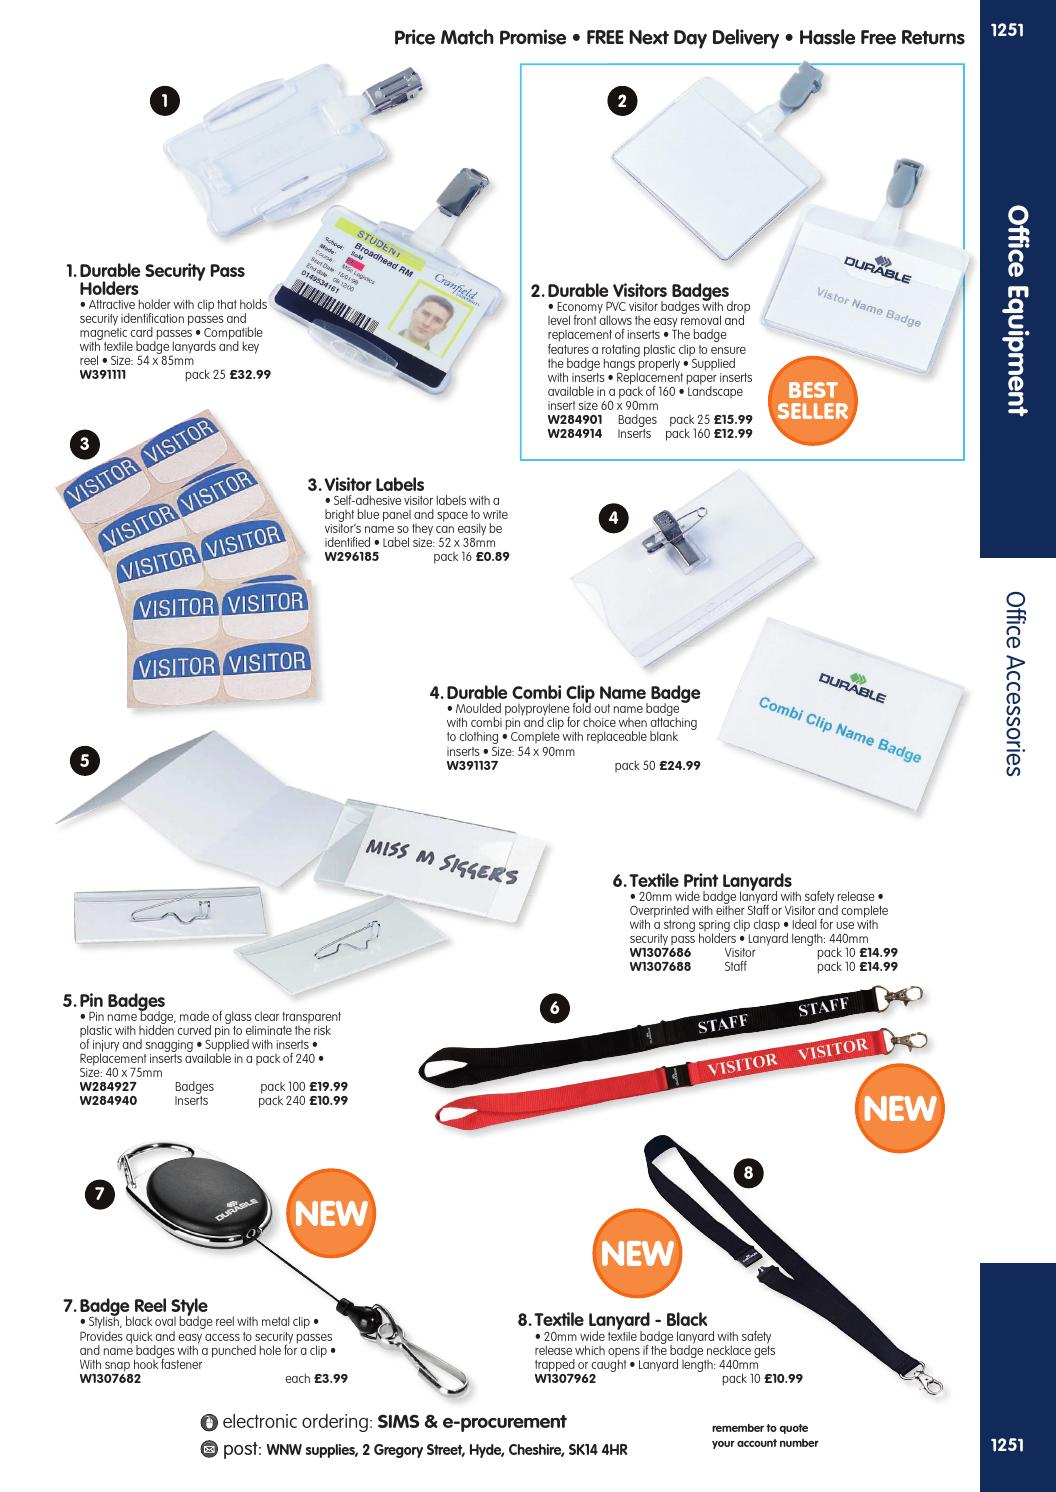 WNW Supplies Catalogue 2015/16 - Office Equipment by Findel